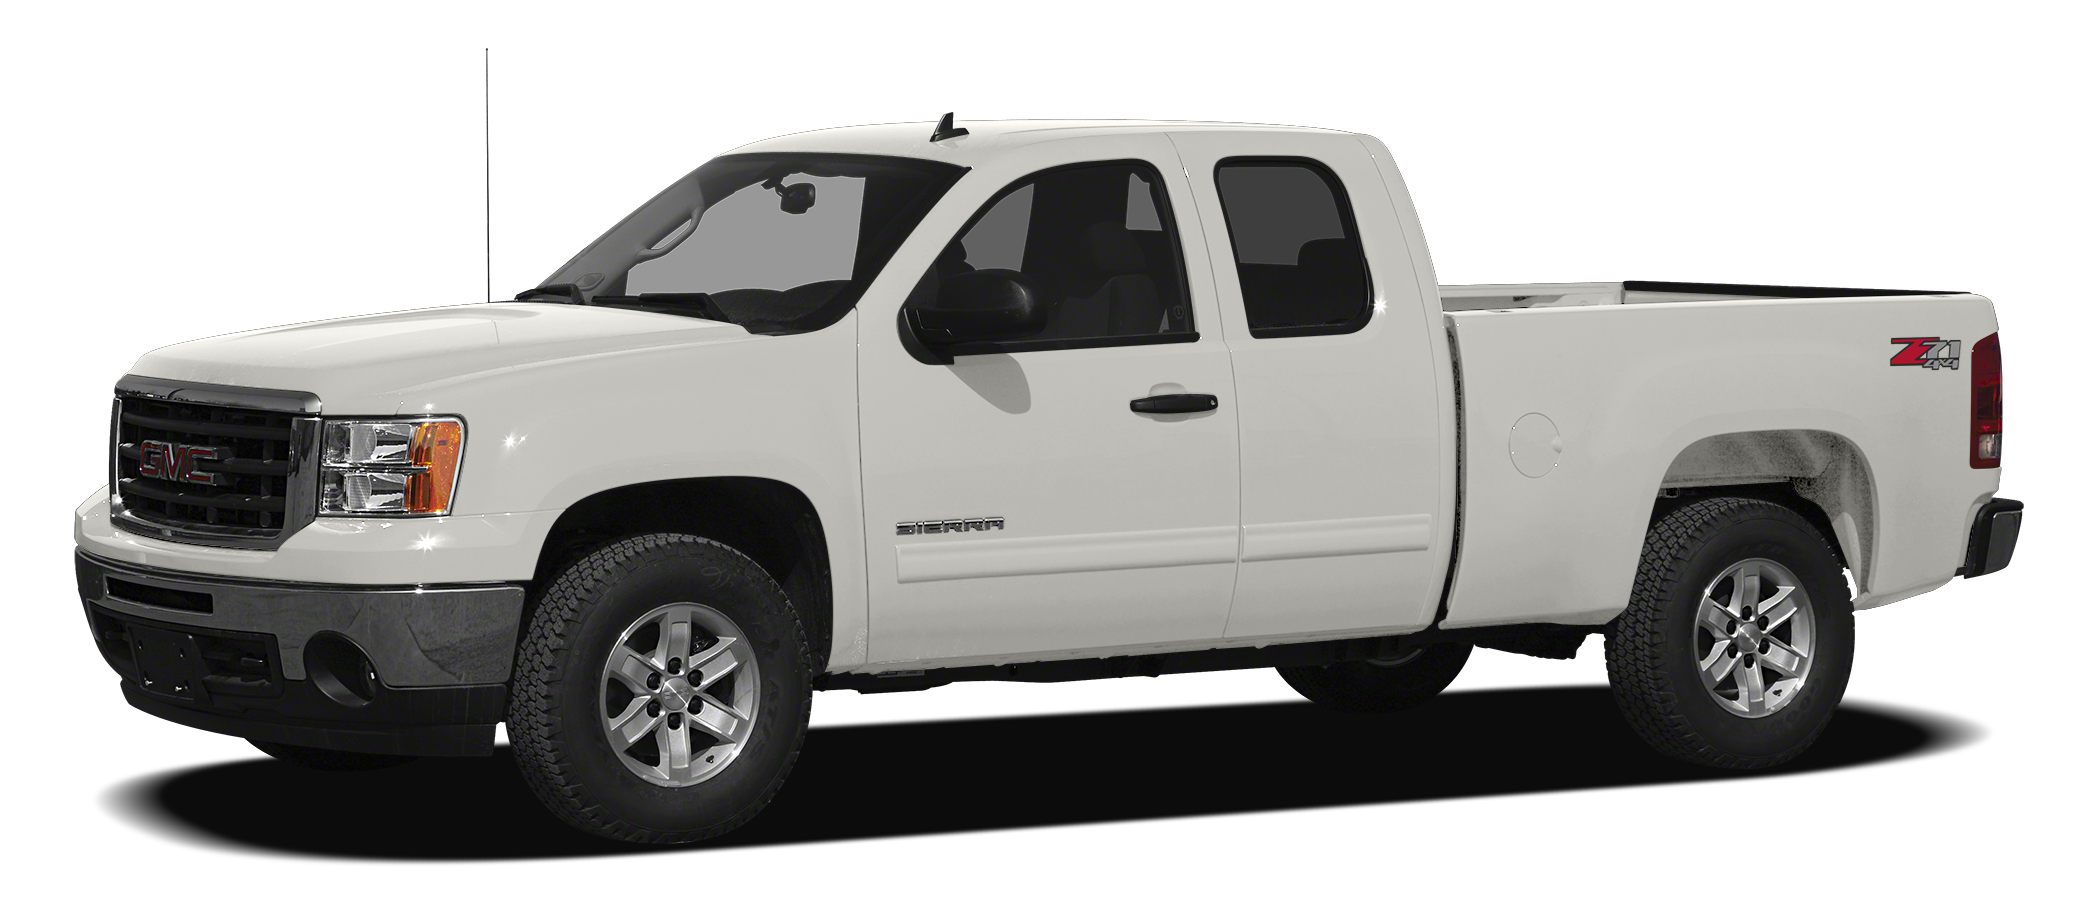 2011 GMC Sierra 1500 SL Less than 29k Miles 4 Wheel Drive4X44WD New In Stock Oh yeah T